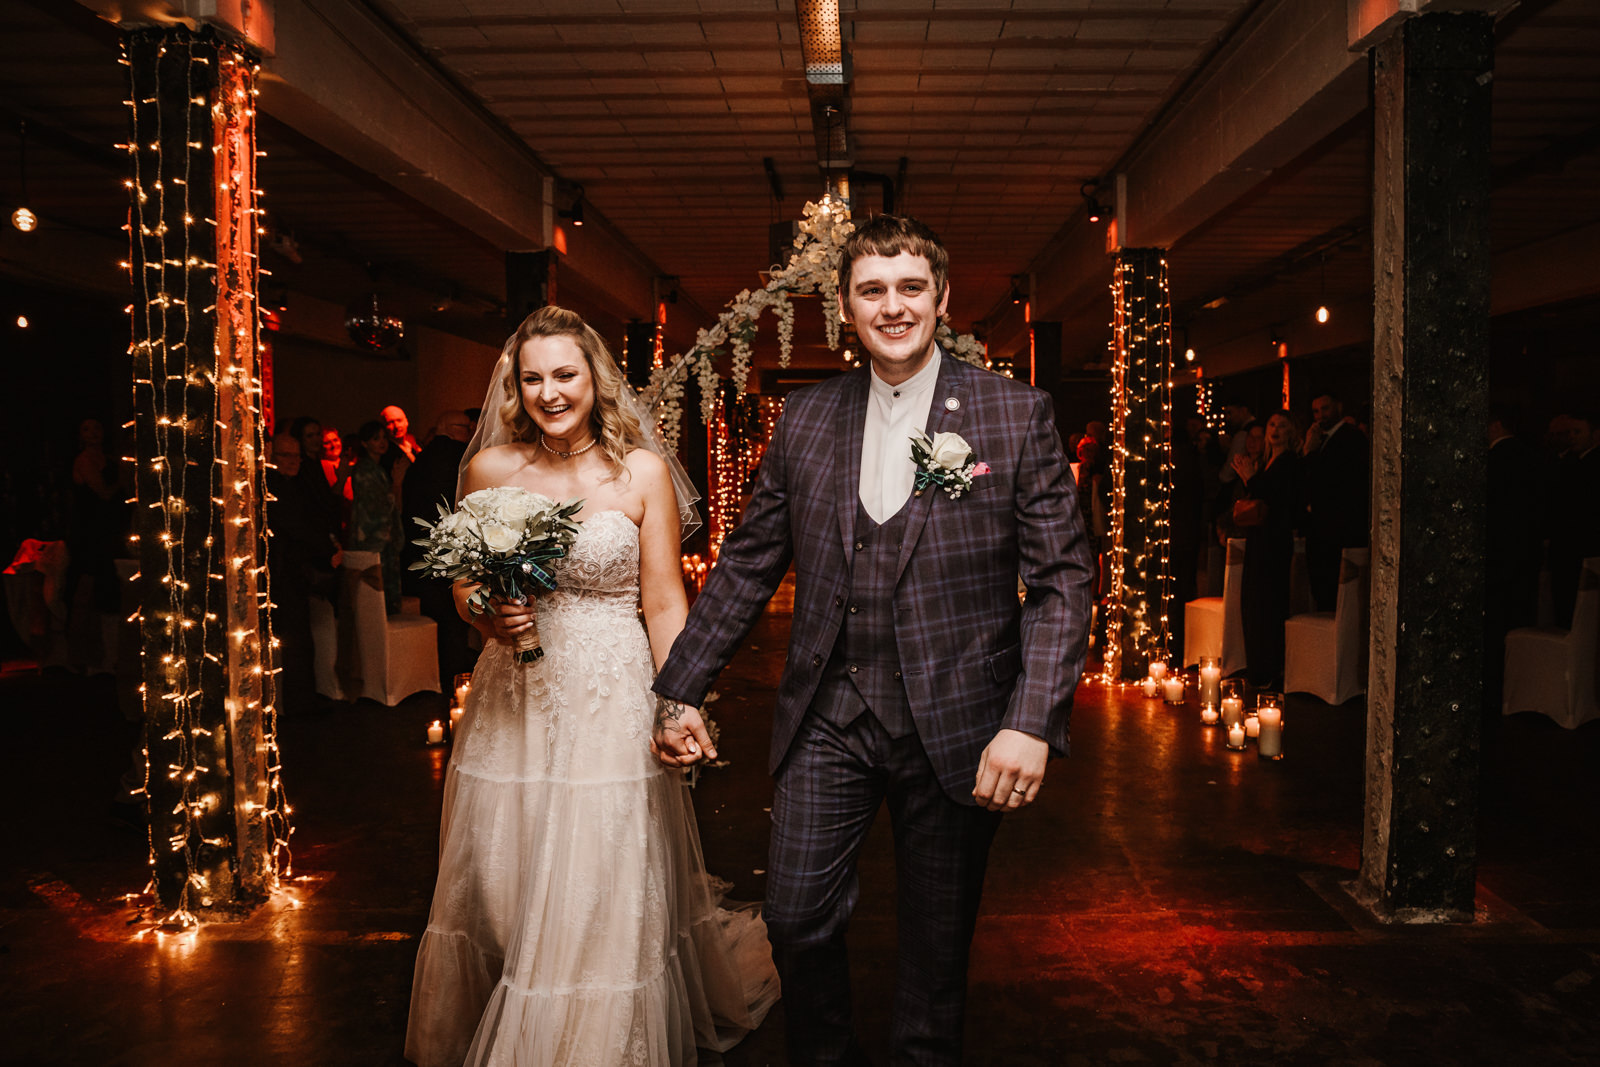 Married couple walk down the aisle at Victoria Warehouse